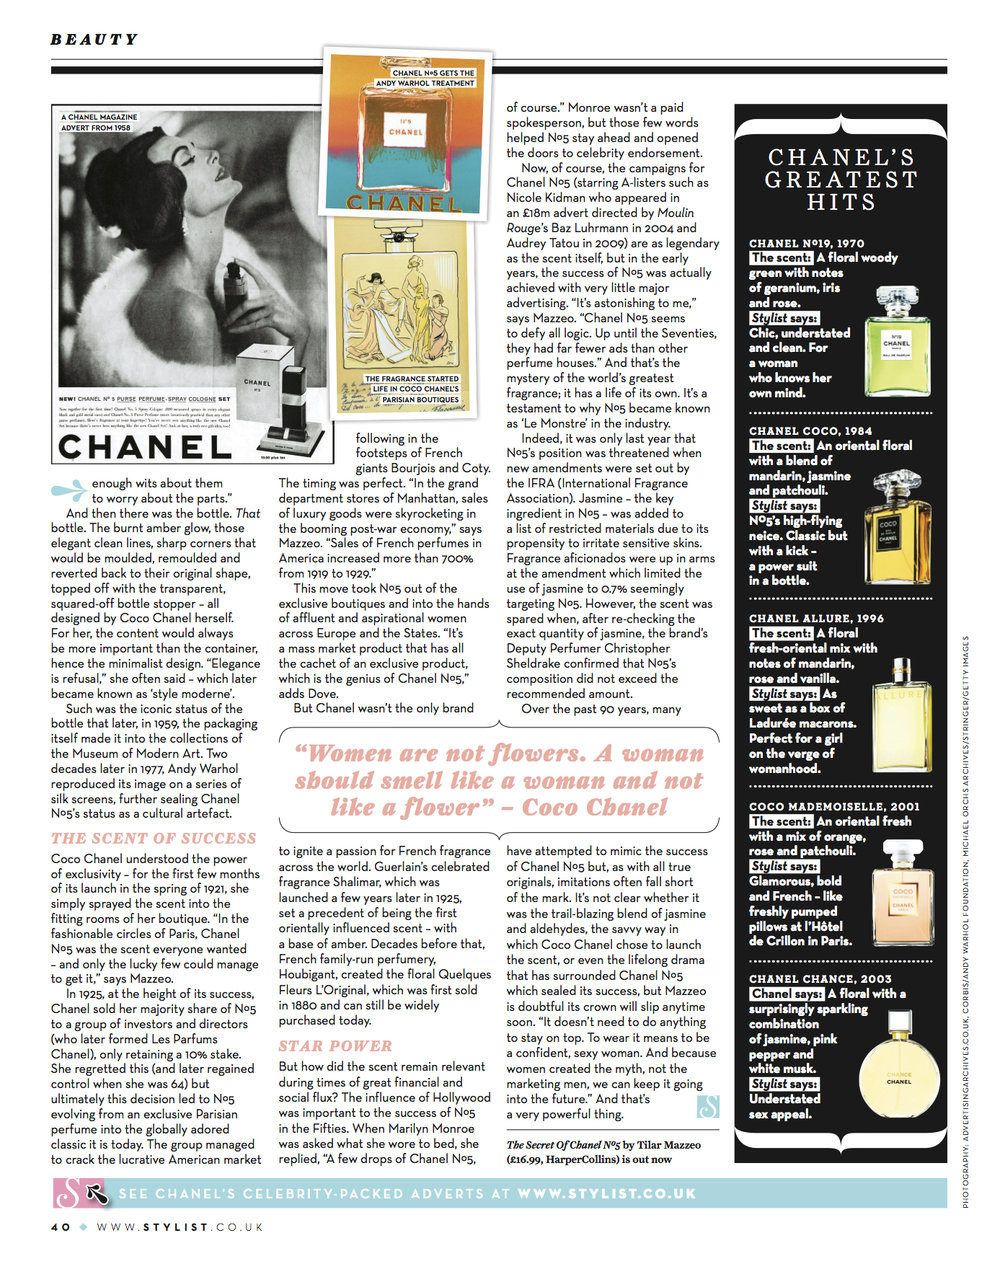 56 MARILYNS SECRET WEAPON - Chanel No.5 3.jpg